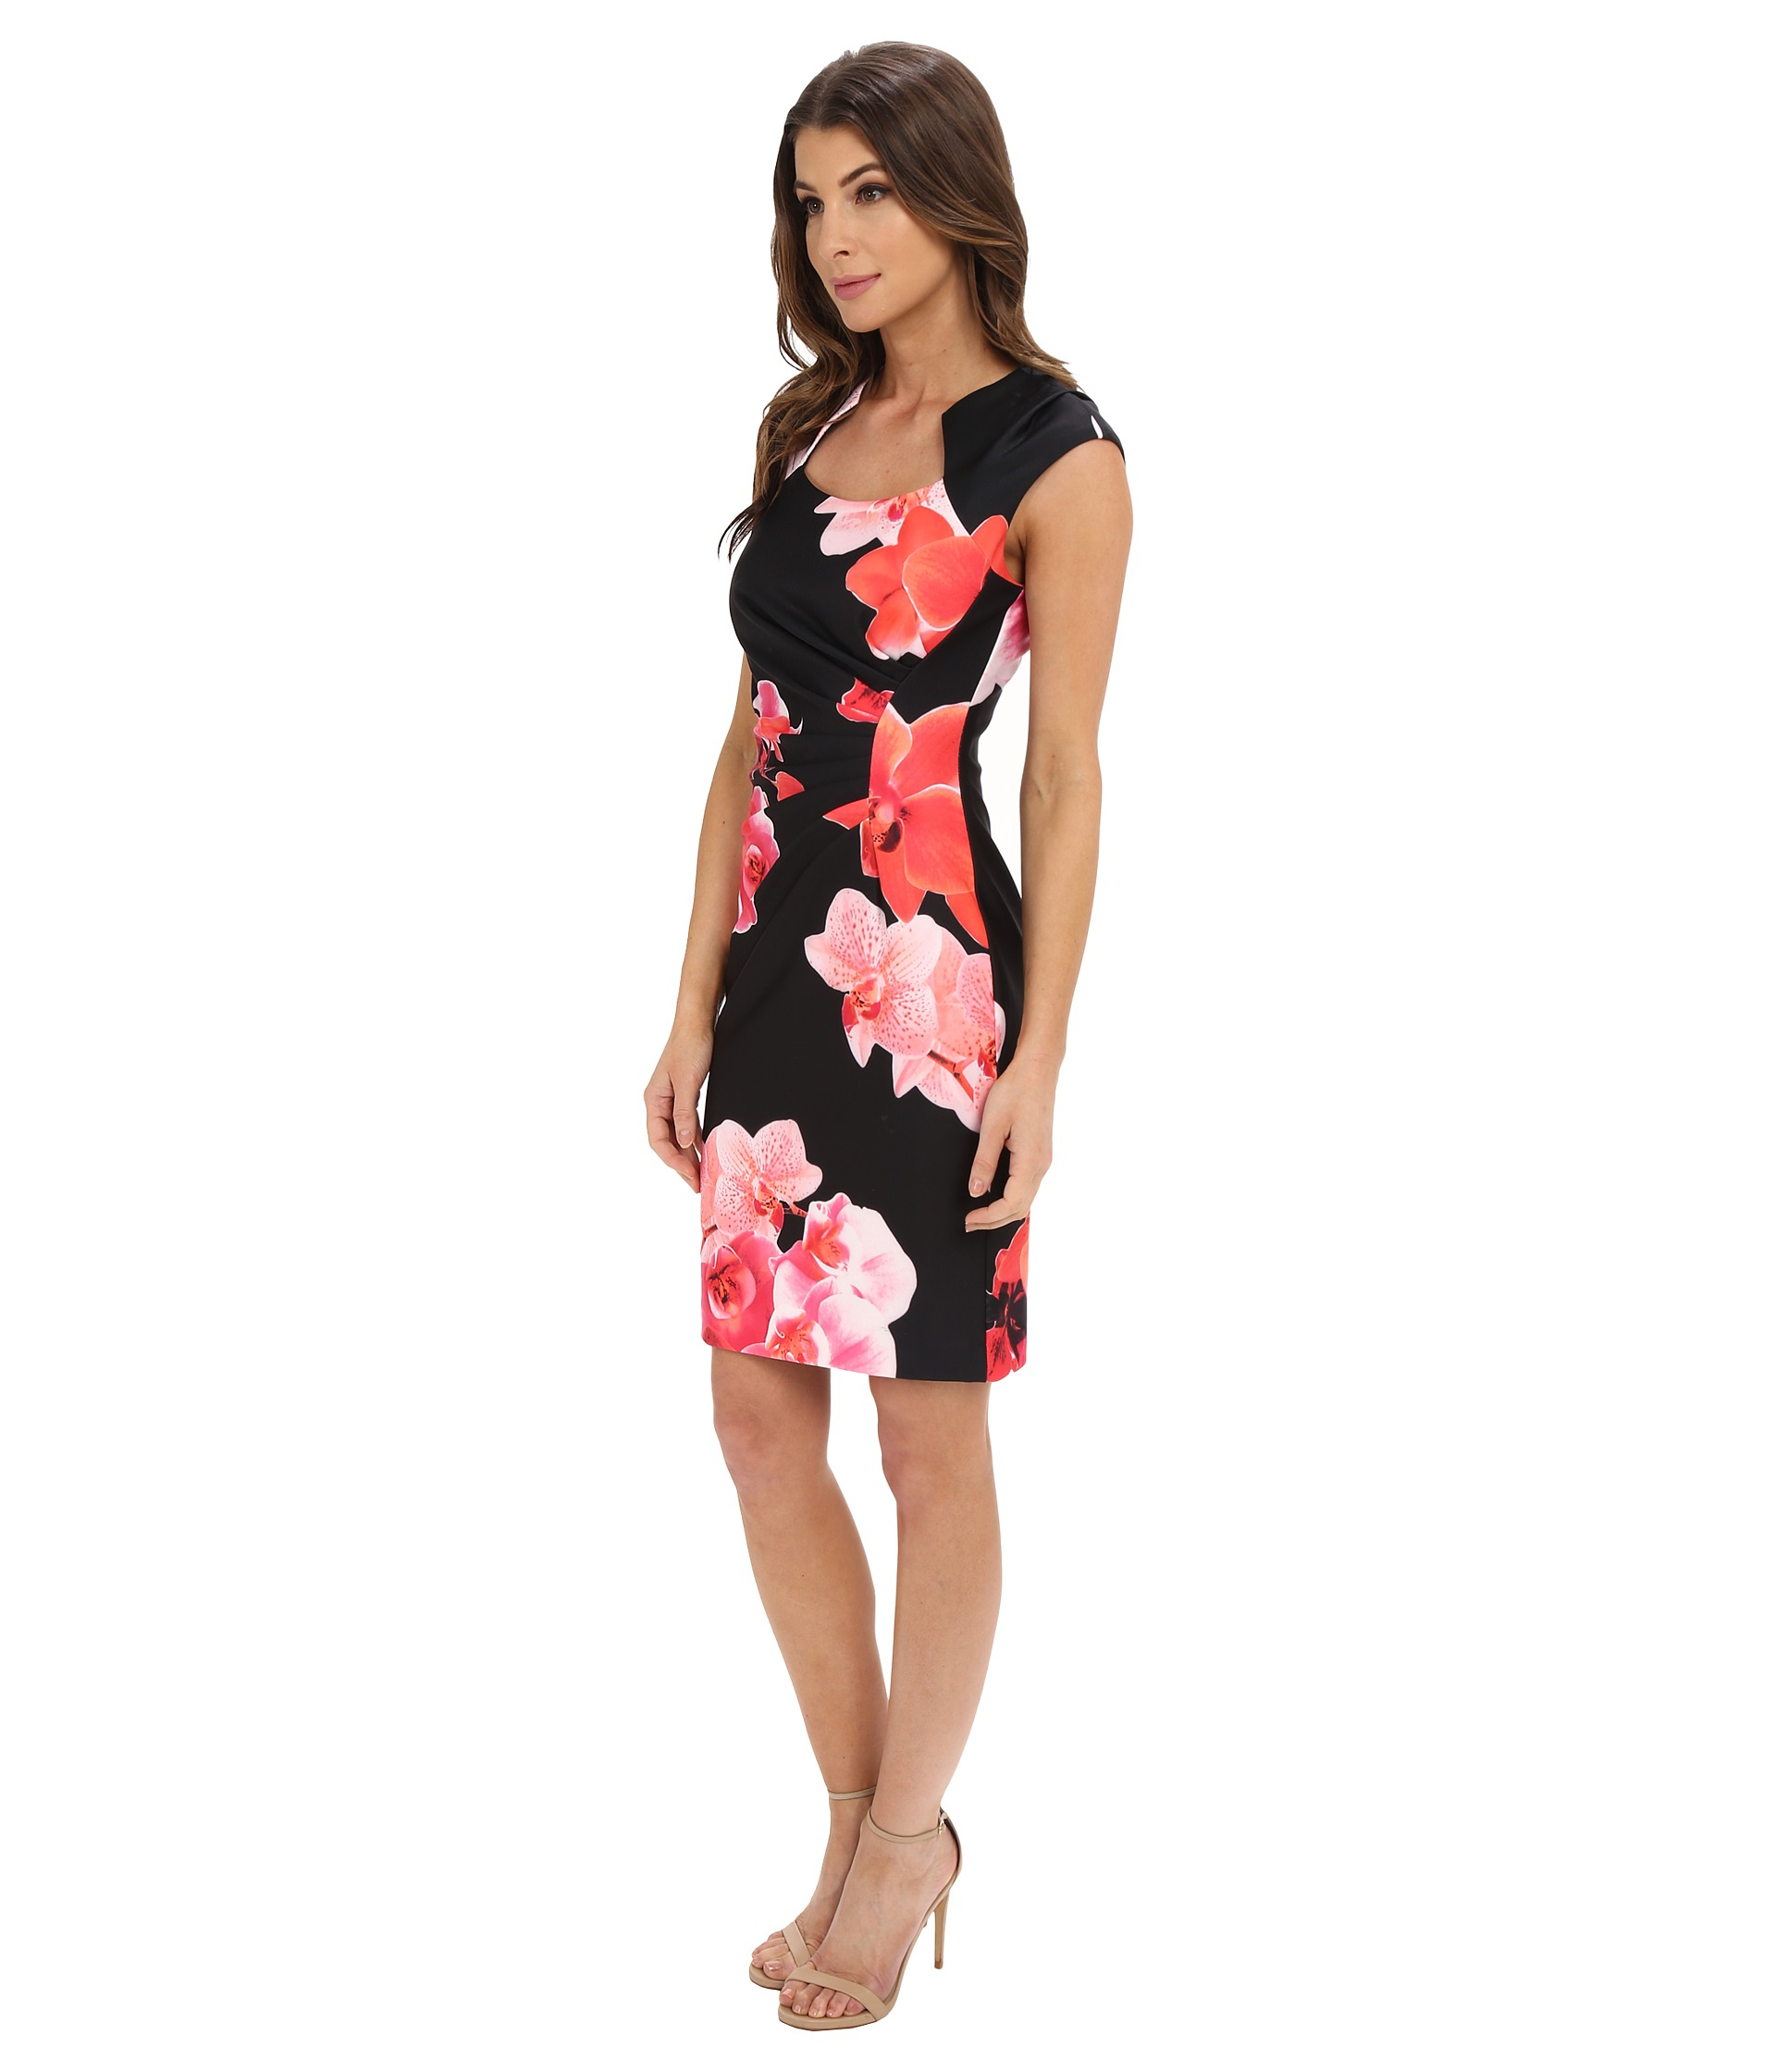 447f9f9c8a Lyst - Calvin Klein Floral Print Sheath Dress Cd6m4021 in Black